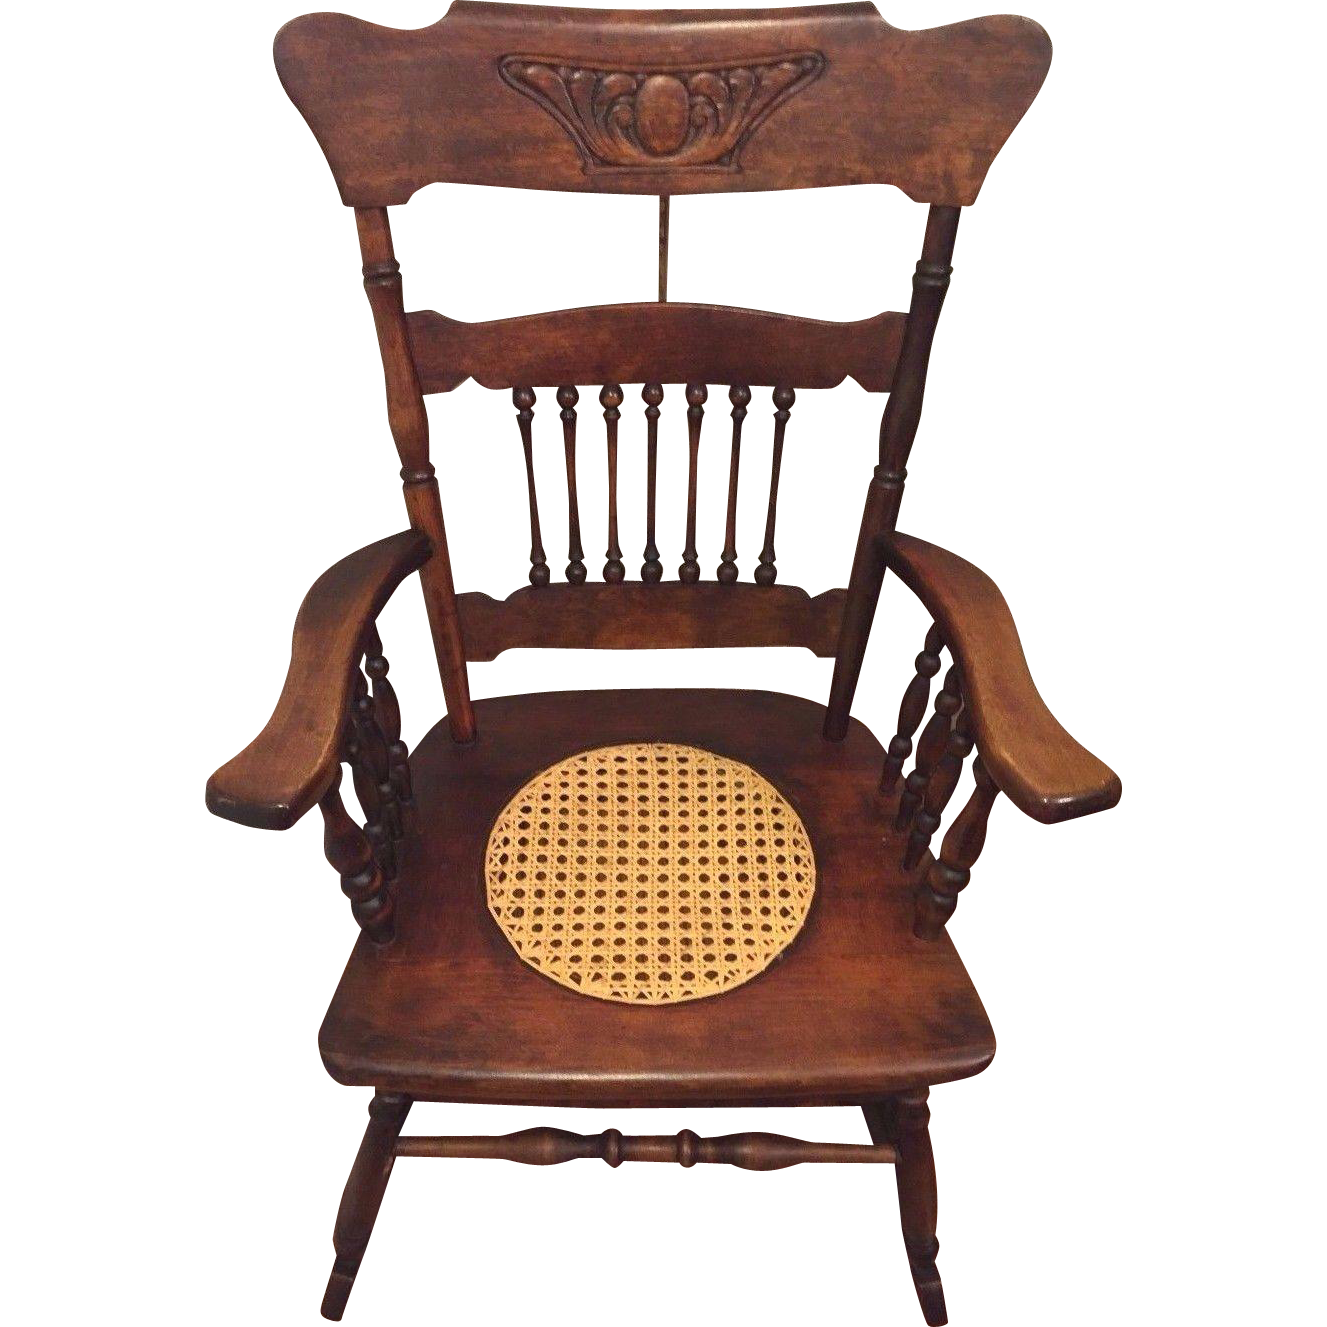 antique rocking chair w cane seat hartwig kemper baltimore md mfgr from timelesstokensde on. Black Bedroom Furniture Sets. Home Design Ideas